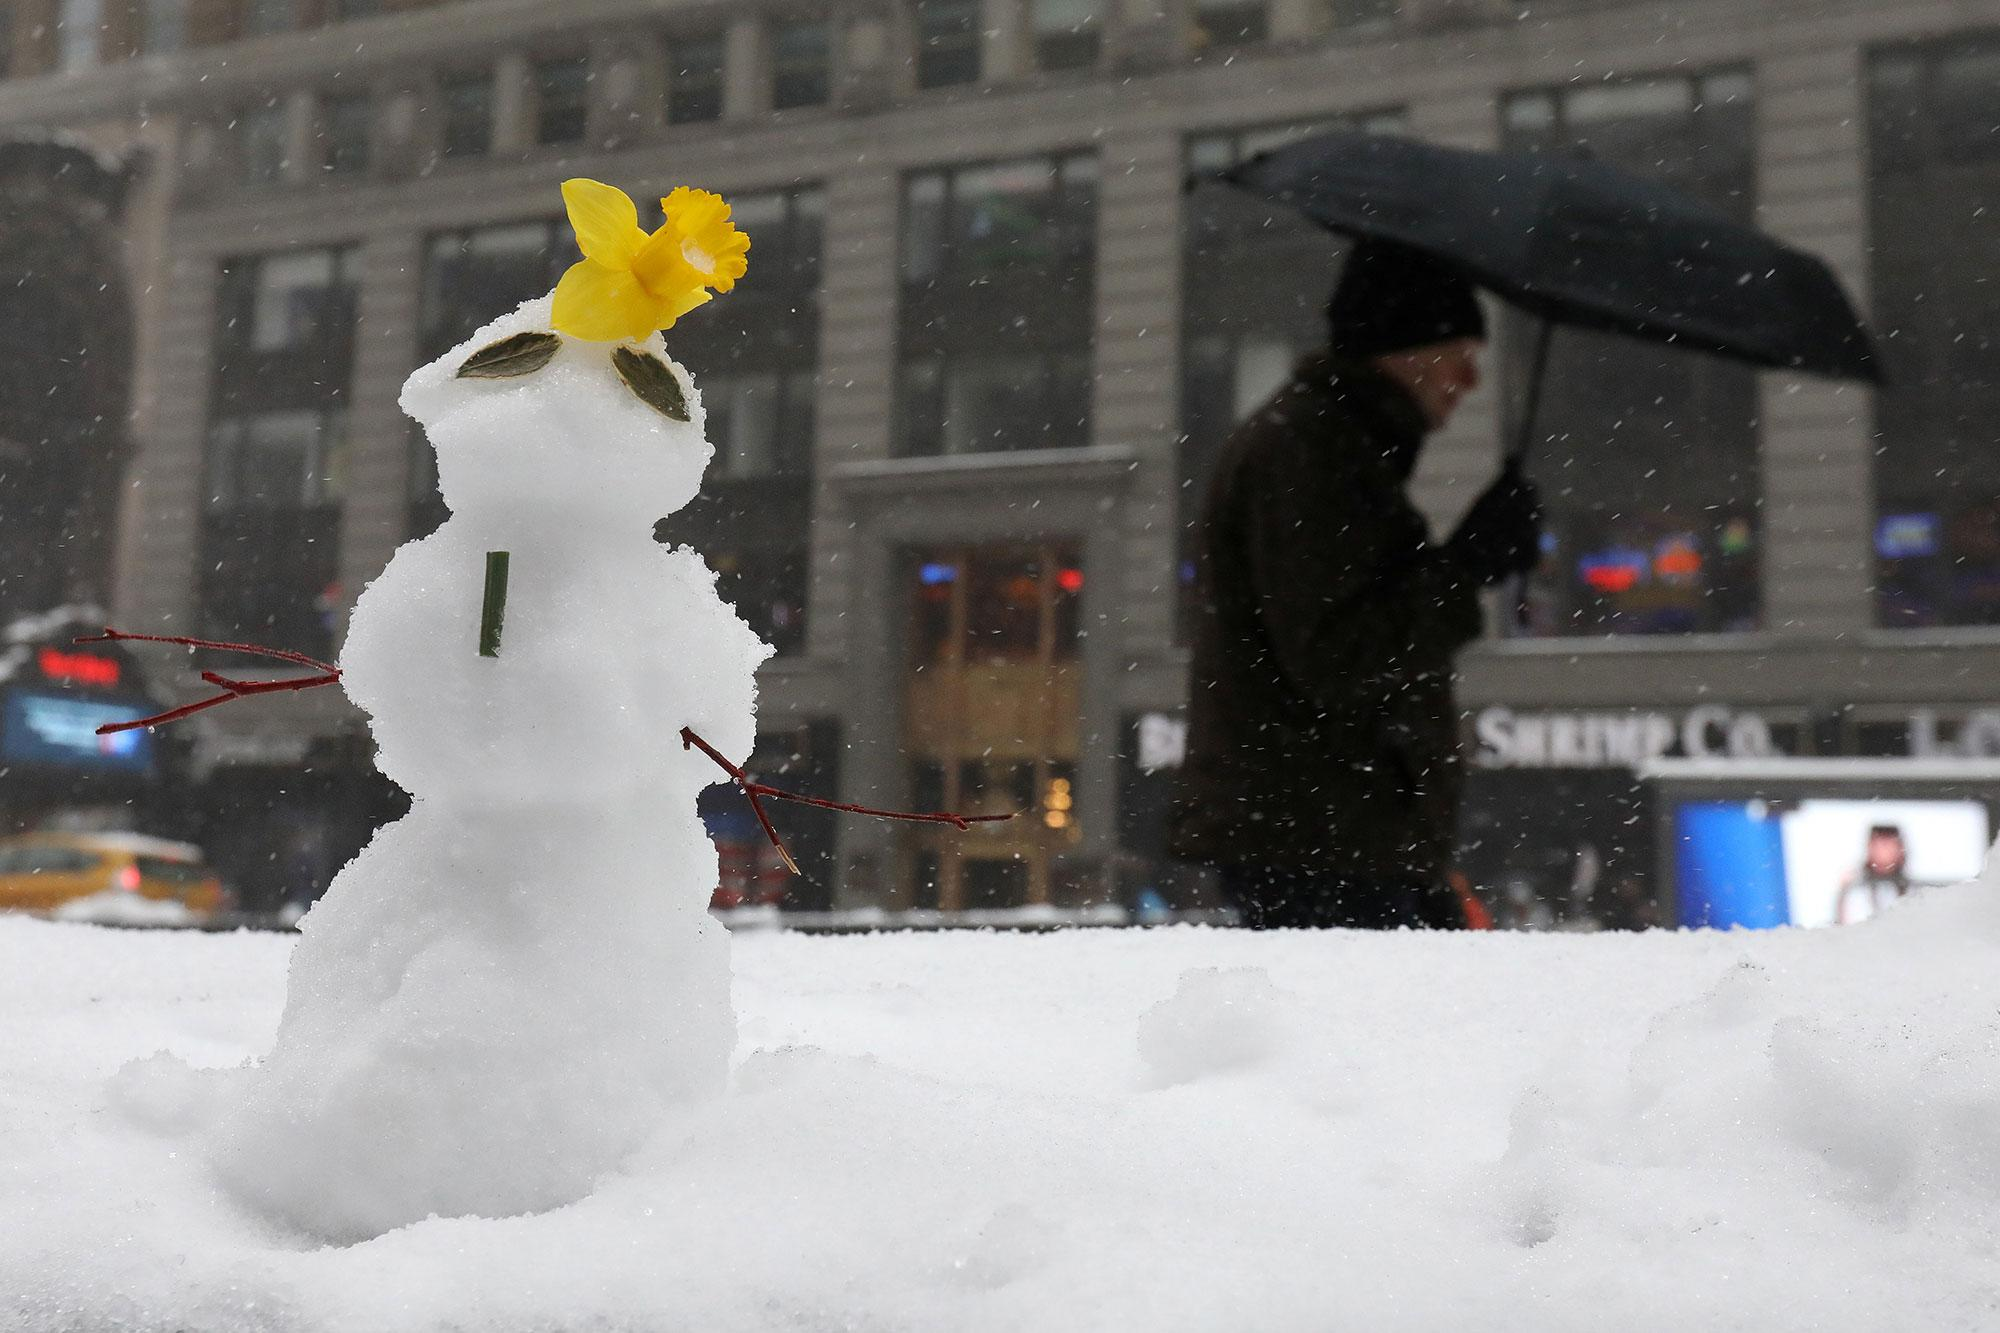 <p>A man walks with an umbrella past a snowman during a snow storm in Times Square in the Manhattan borough of New York, New York, U.S. March 14, 2017. (Carlo Allegri/Reuters) </p>